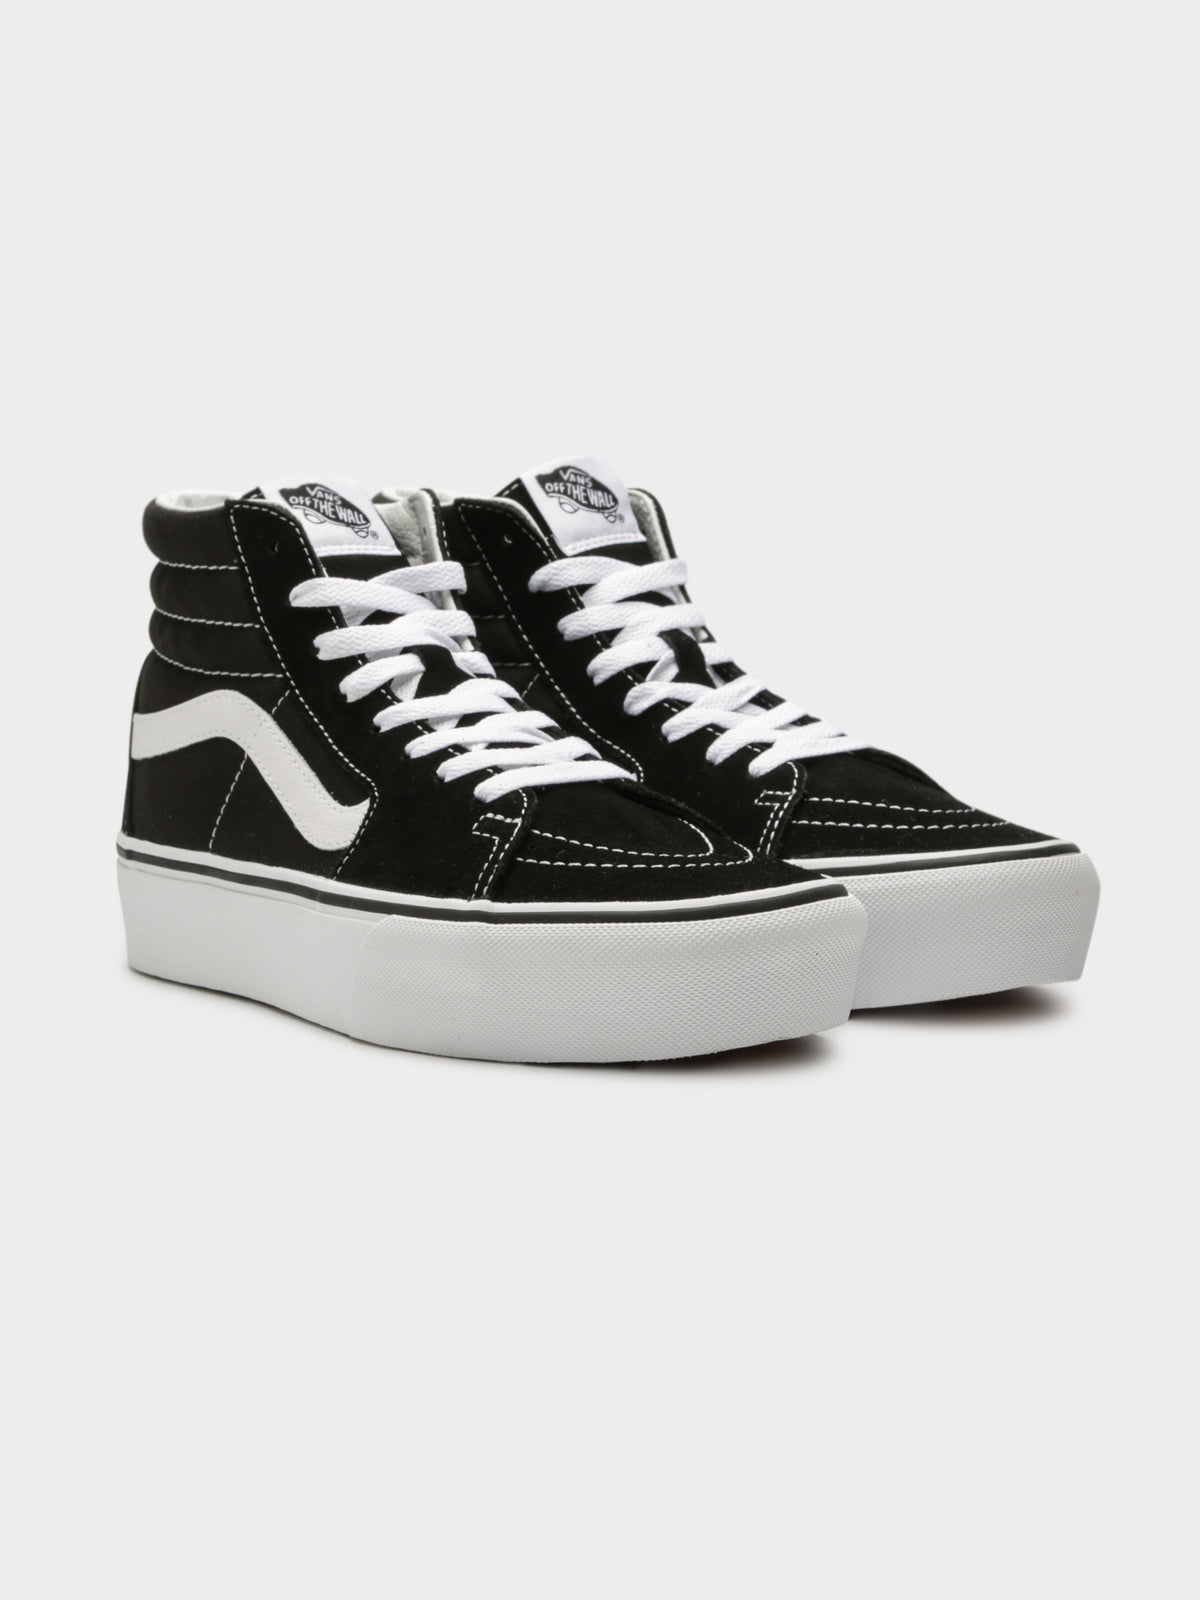 Unisex SK8 Hi-Rise Platform Sneakers in Black and White